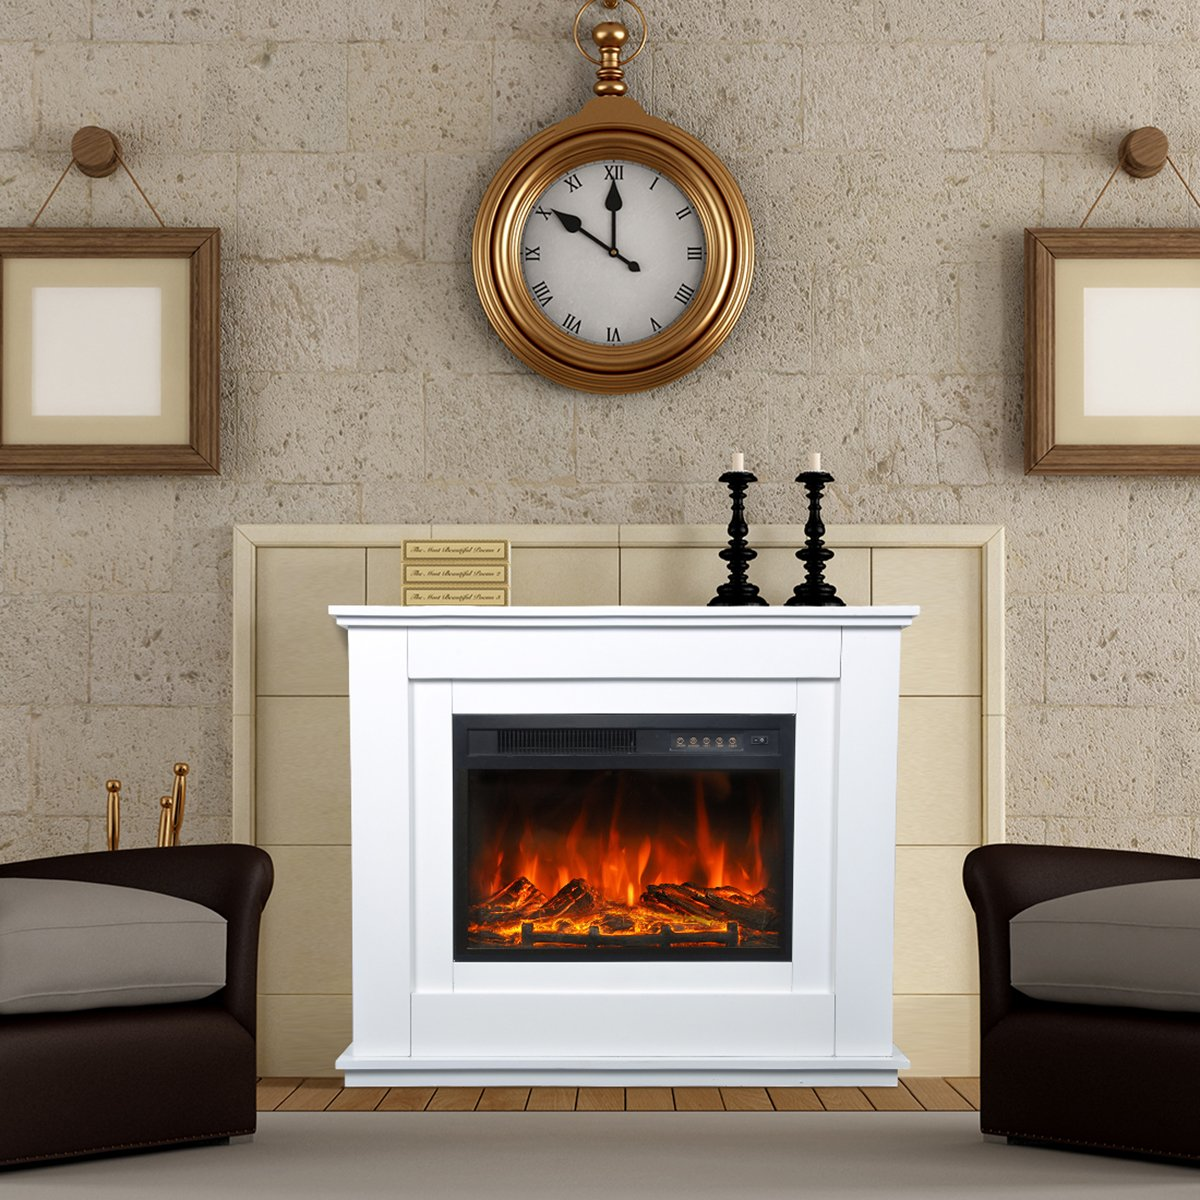 bps electric fireplace suite glass fronted electric fire in white